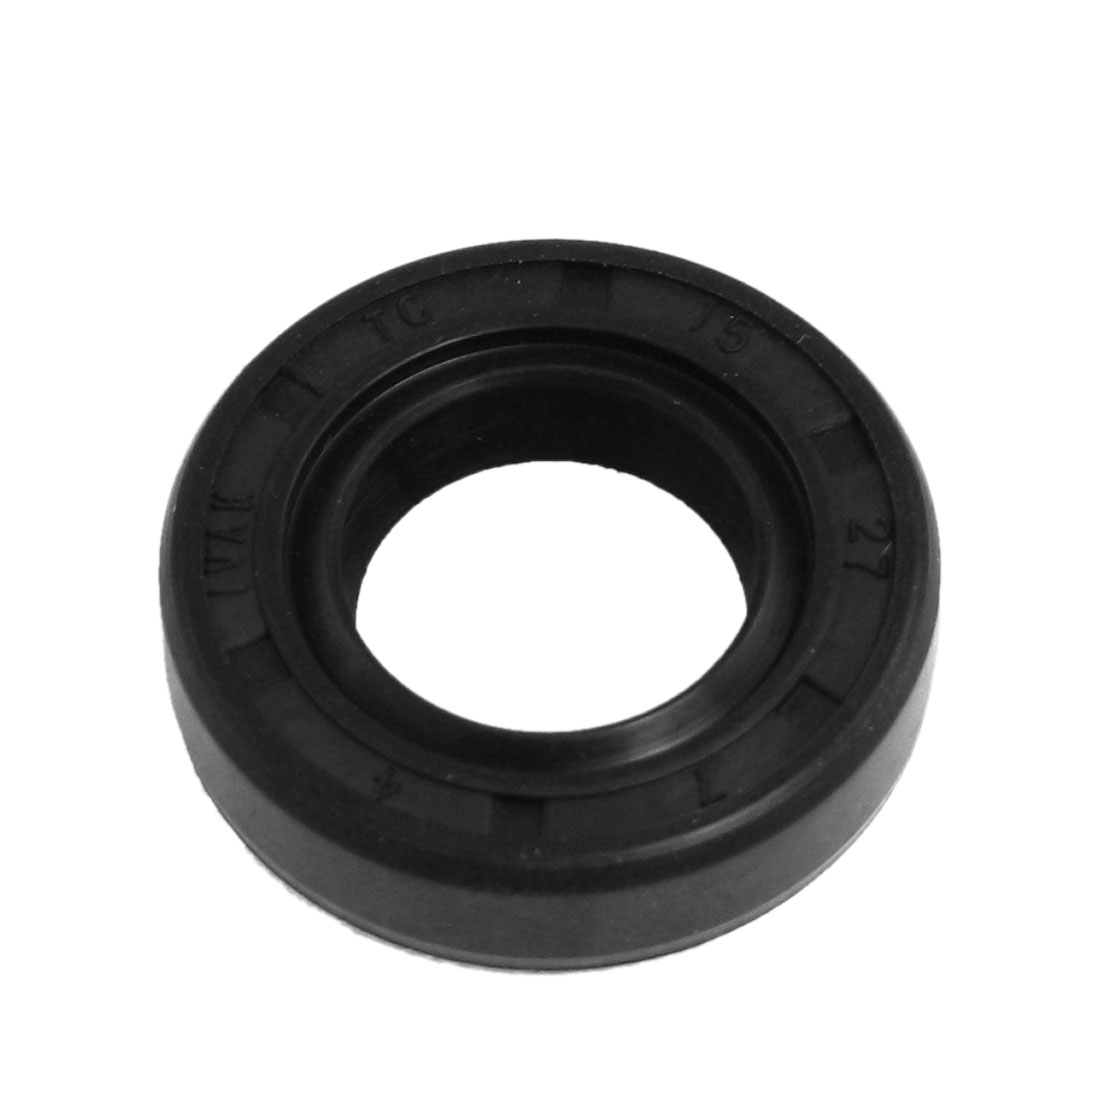 15mm x 27mm x 7mm Nitrile Rubber Double Lip TC Oil Shaft Seal Black